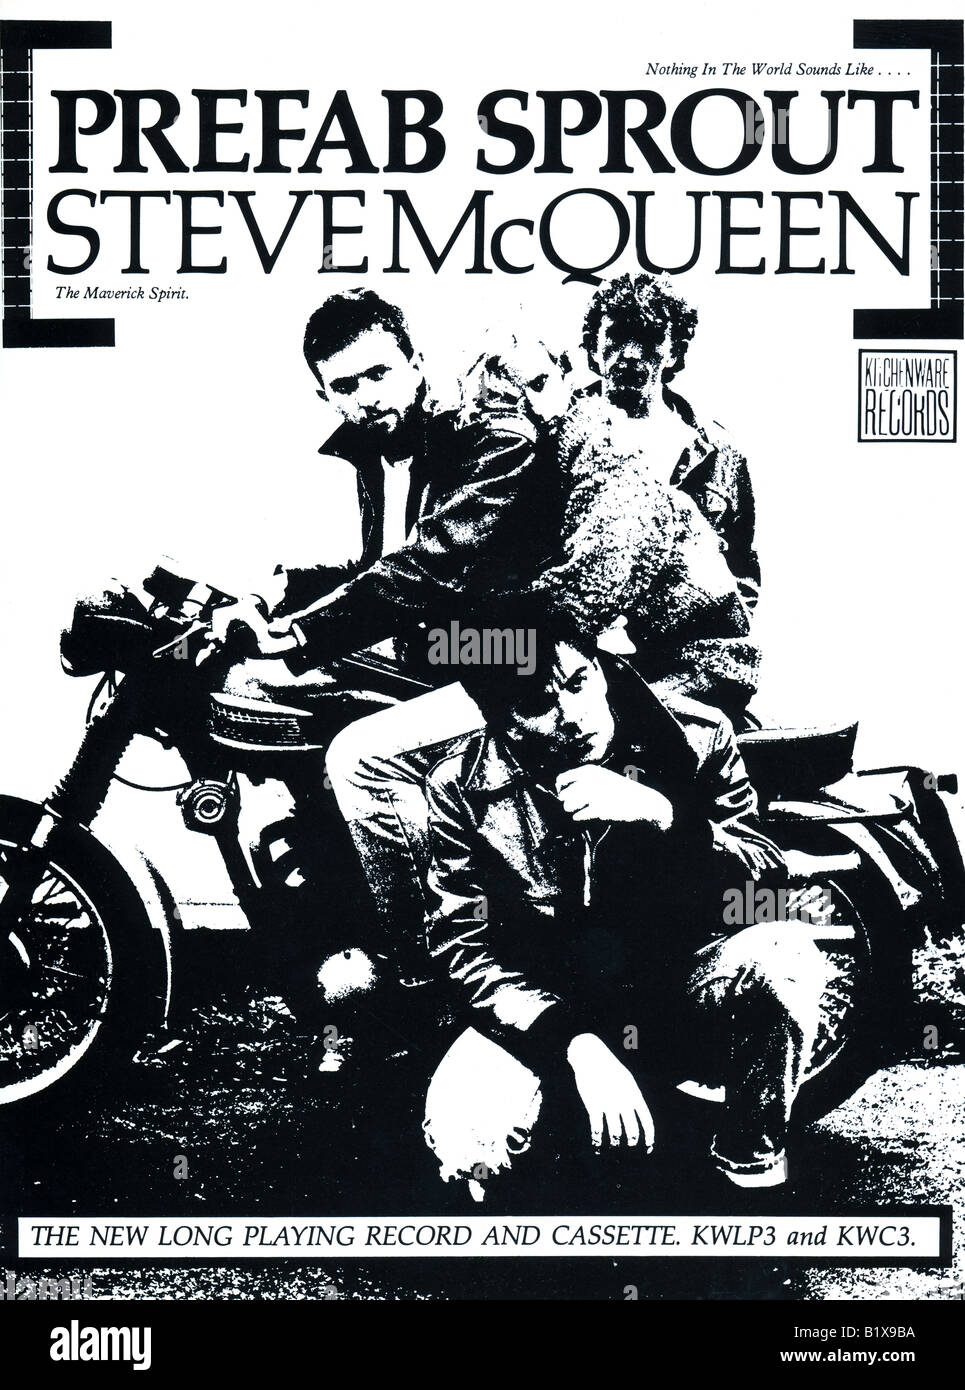 1980s 1985 advertisement from Kitchenware Records new album Steve McQueen by Prefab Sprout FOR EDITORIAL USE ONLY - Stock Image